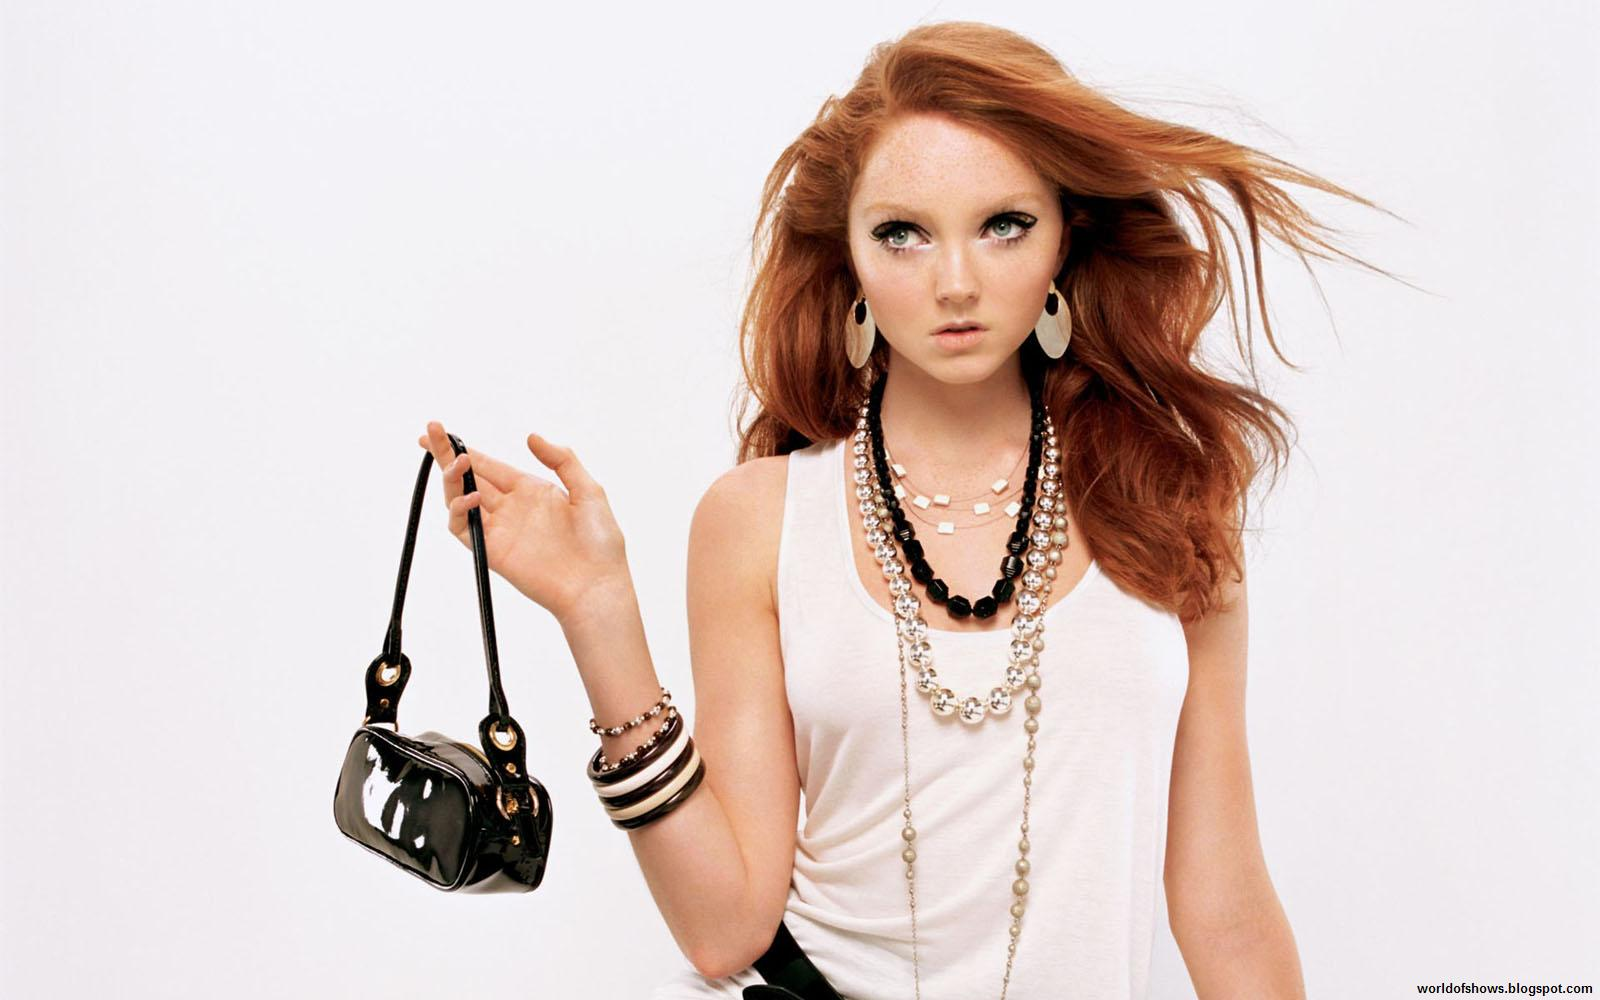 http://4.bp.blogspot.com/--8bFpBT8uqg/T_VhdrvMruI/AAAAAAAAGt4/OoRWH-_fgqs/s1600/Lily_Cole_Cute_English_Model_Actress_Handbag_And_Jewelleries_Hd_Desktop_Wallpaper_worldofshows.blogspot.com.jpg